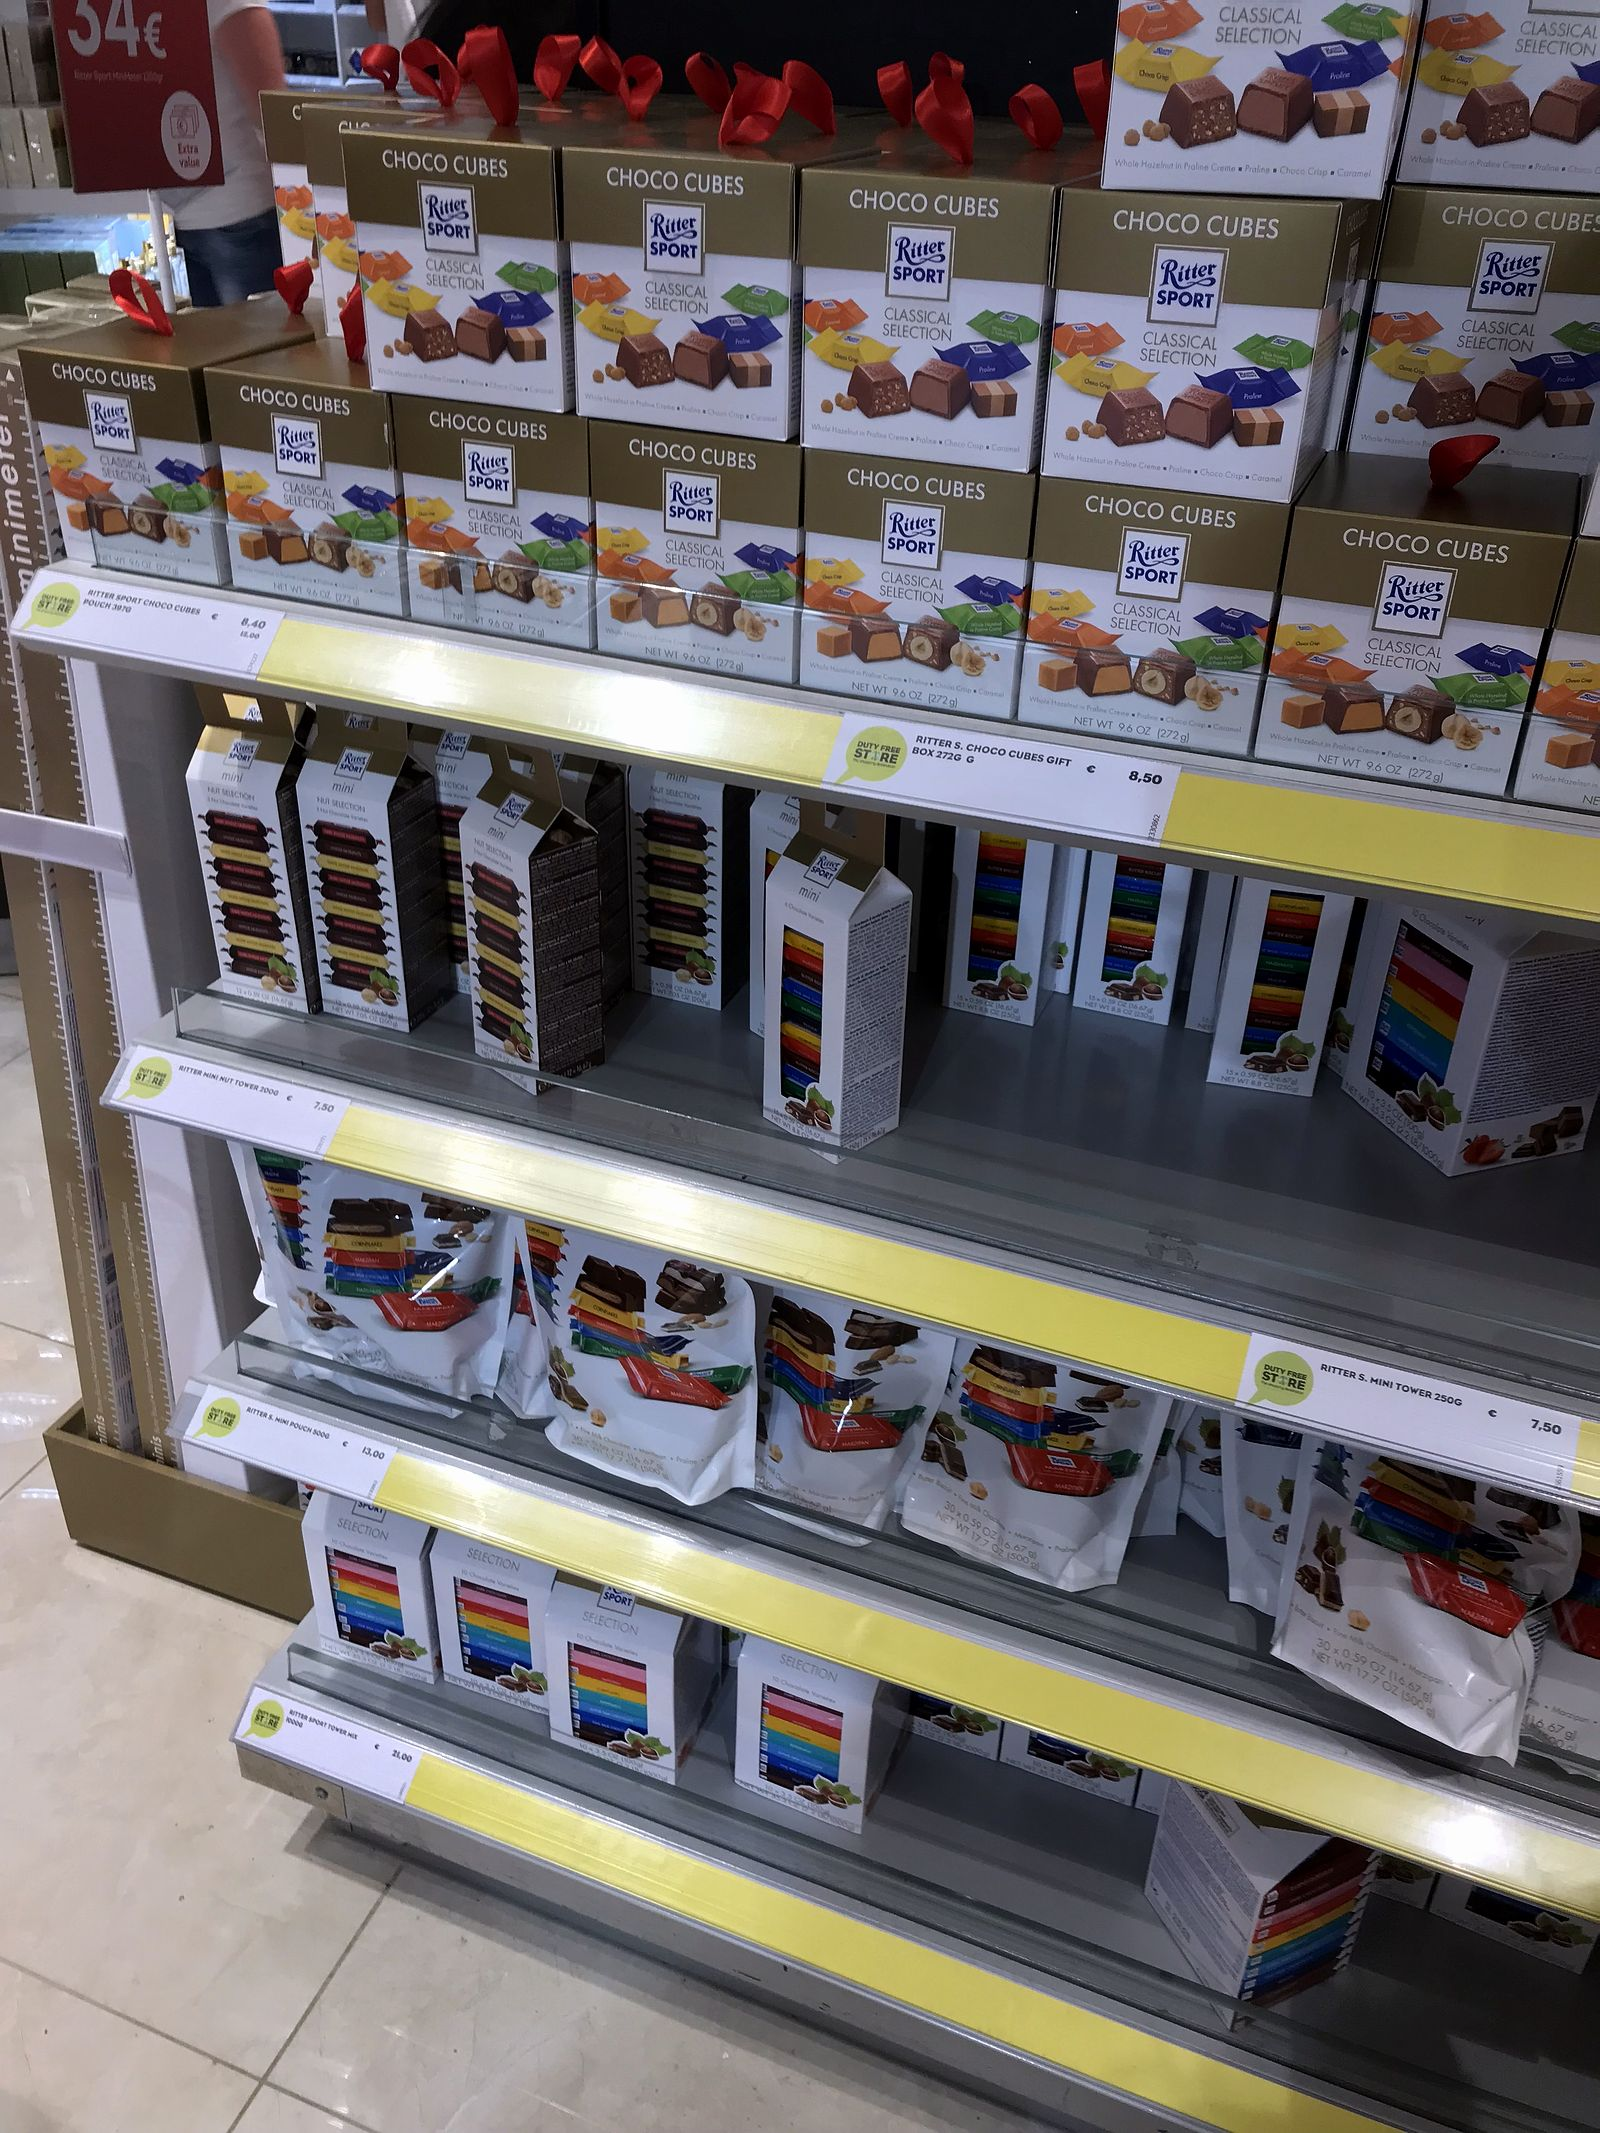 Duty free Antalya, august 2019, Ritter sport